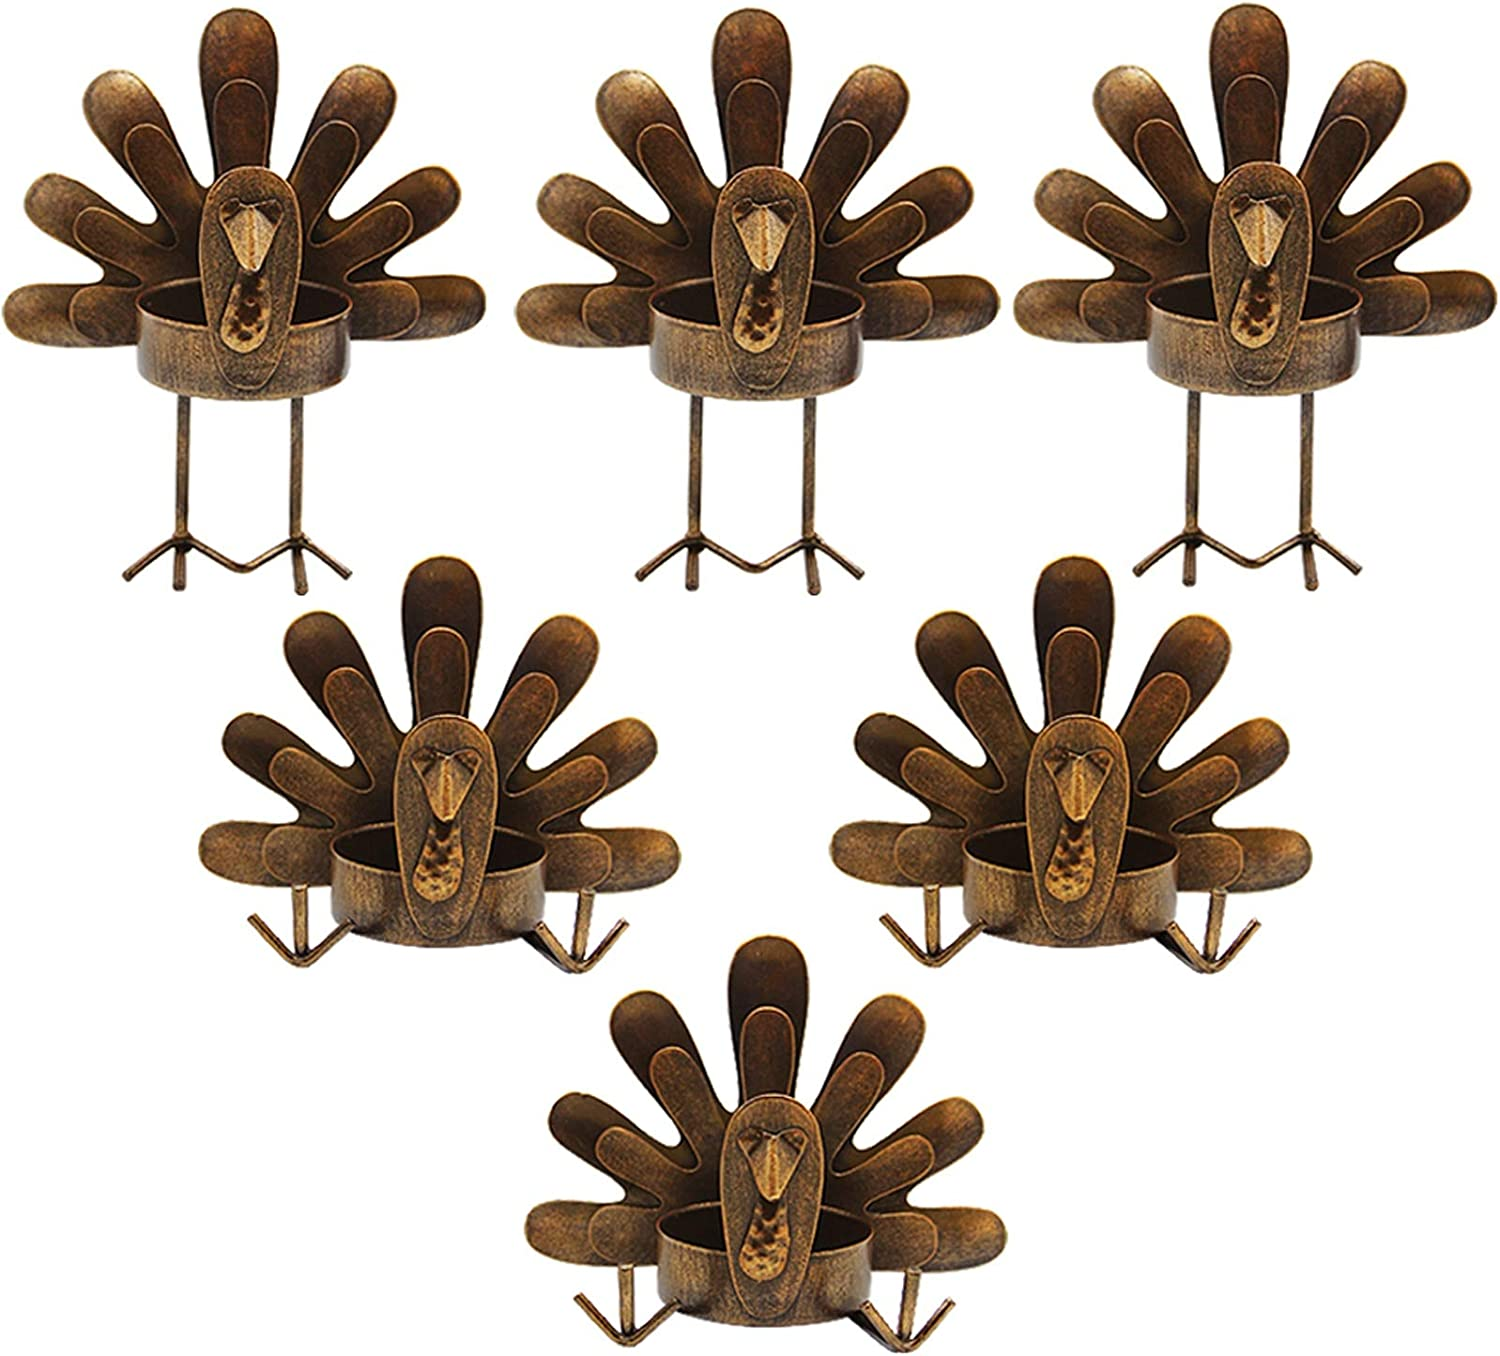 FORUP 6 Pack Metal Turkey Tea Light Candle Holders, Thanksgiving Decoration for Home, Turkey Candle Holder, Metal Candle Holder, Thanksgiving Candle Holder